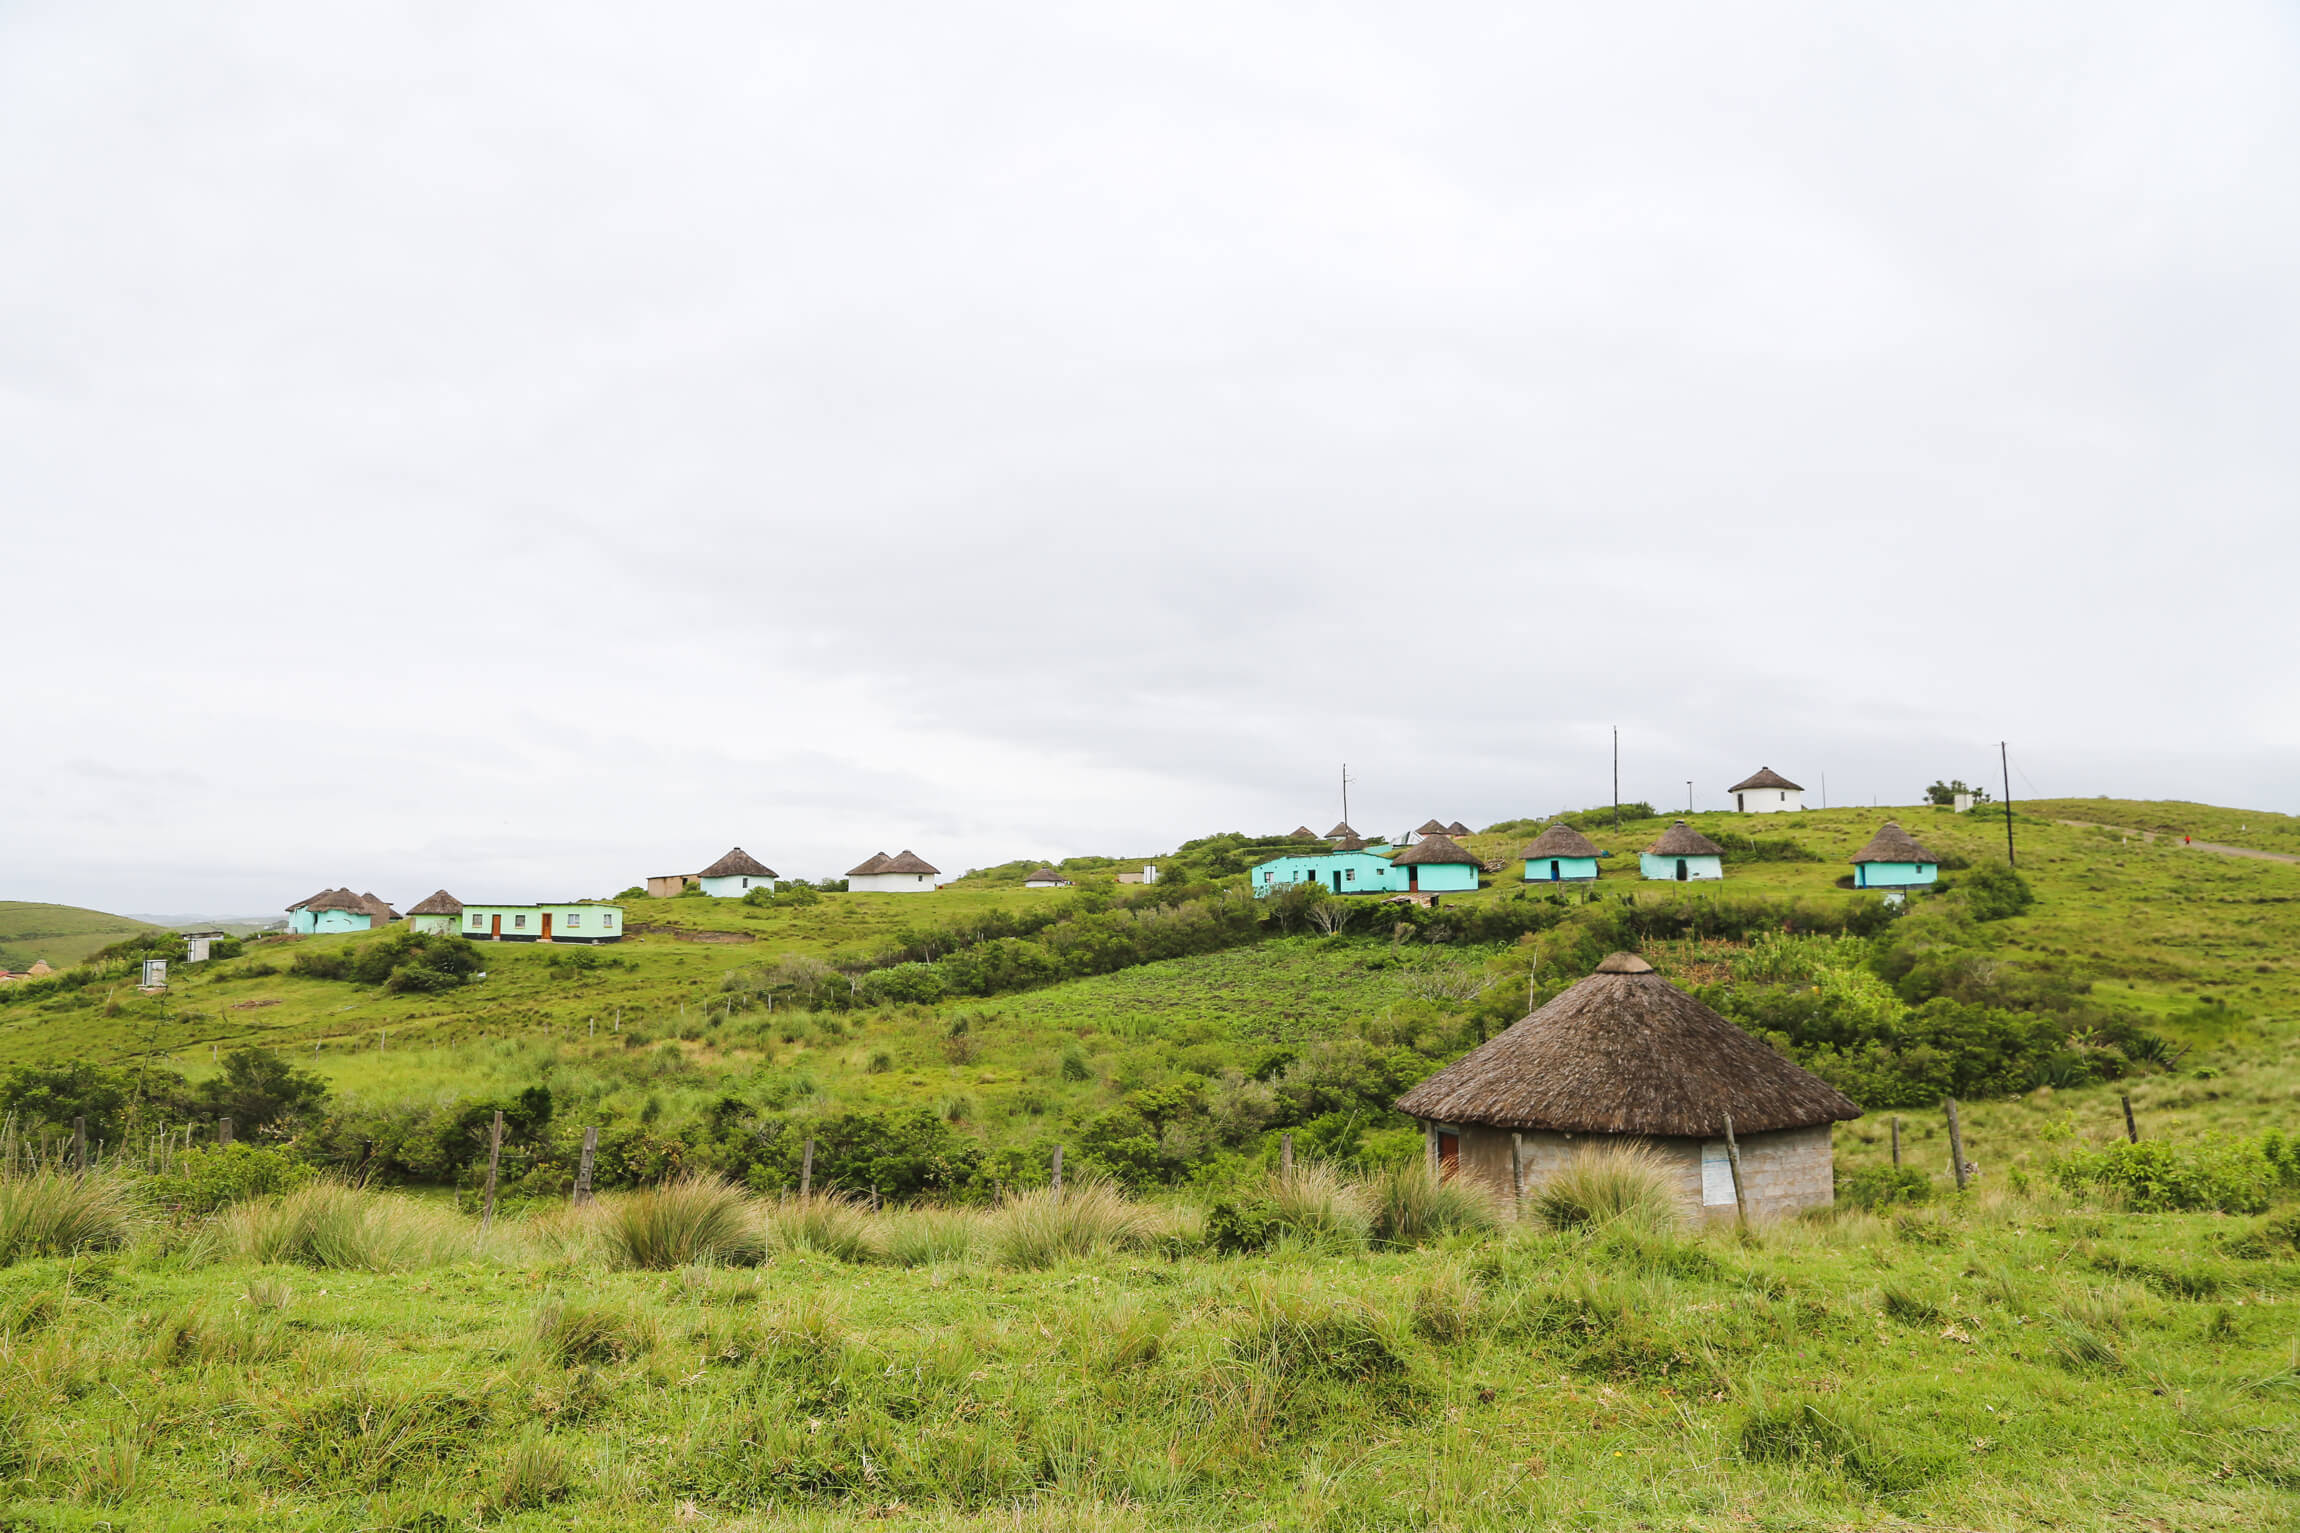 Round huts with thatched roofs on a hill